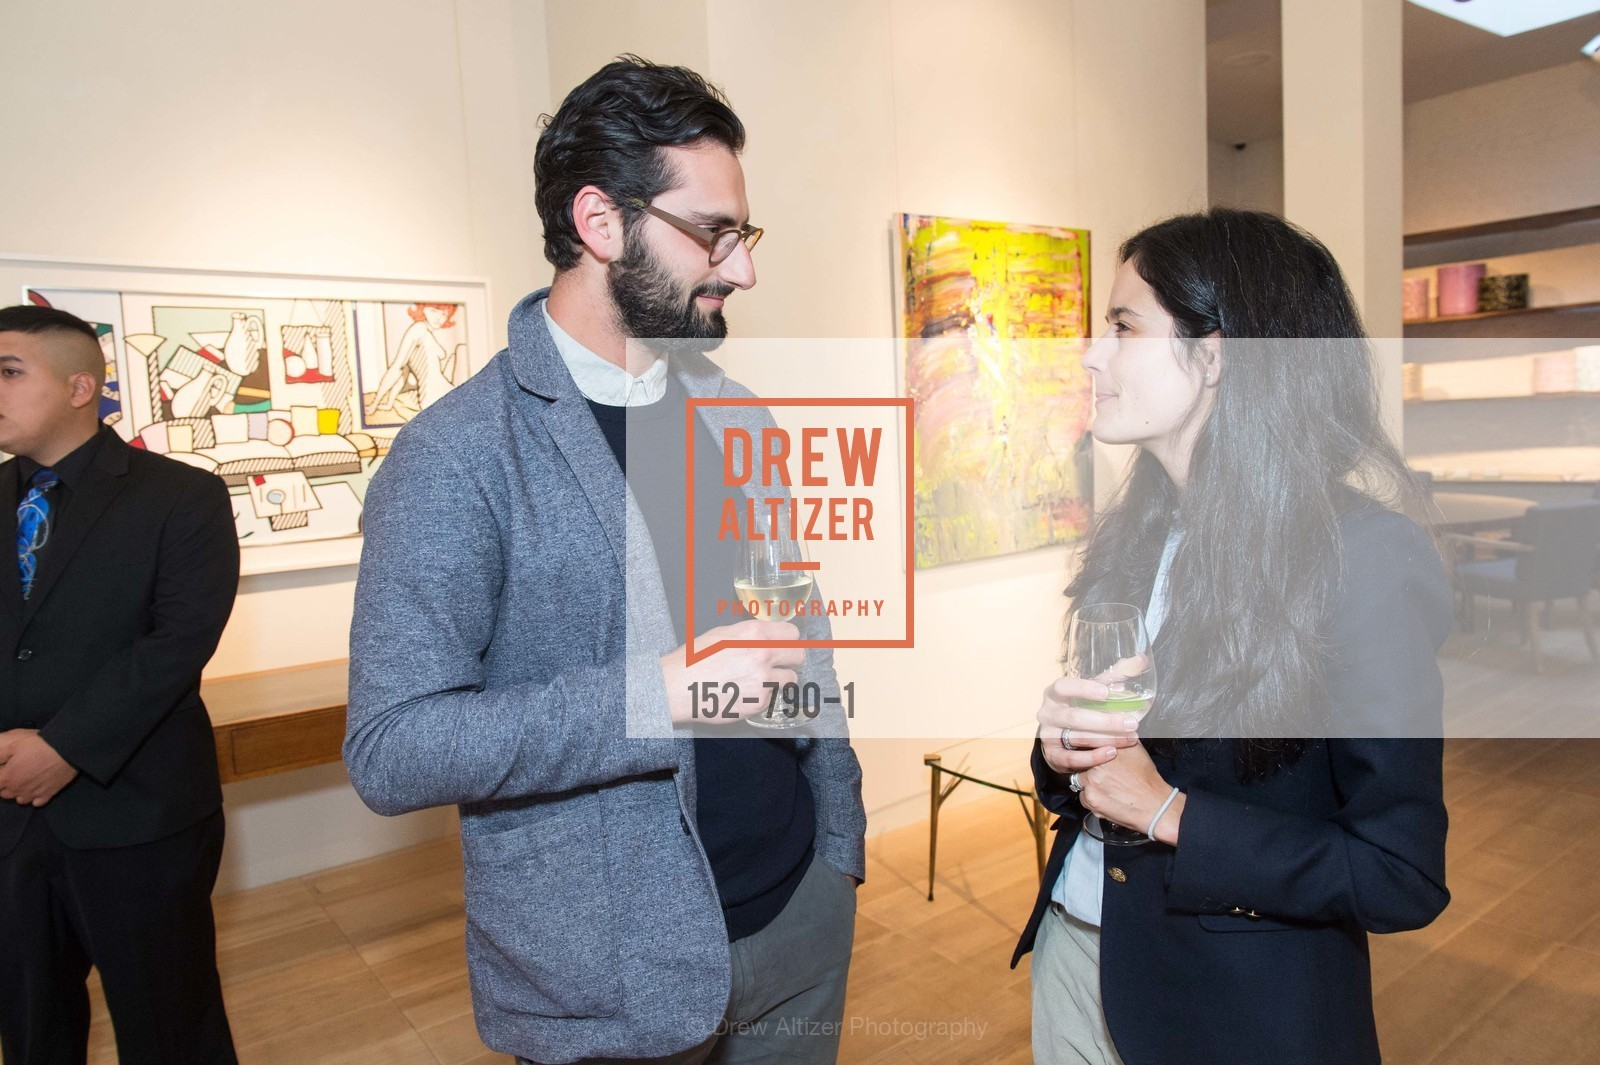 Joseph Becker, Florie Hutchinson, Post War and Contemporary Preview at HEDGE GALLERY, US, April 15th, 2015,Drew Altizer, Drew Altizer Photography, full-service agency, private events, San Francisco photographer, photographer california